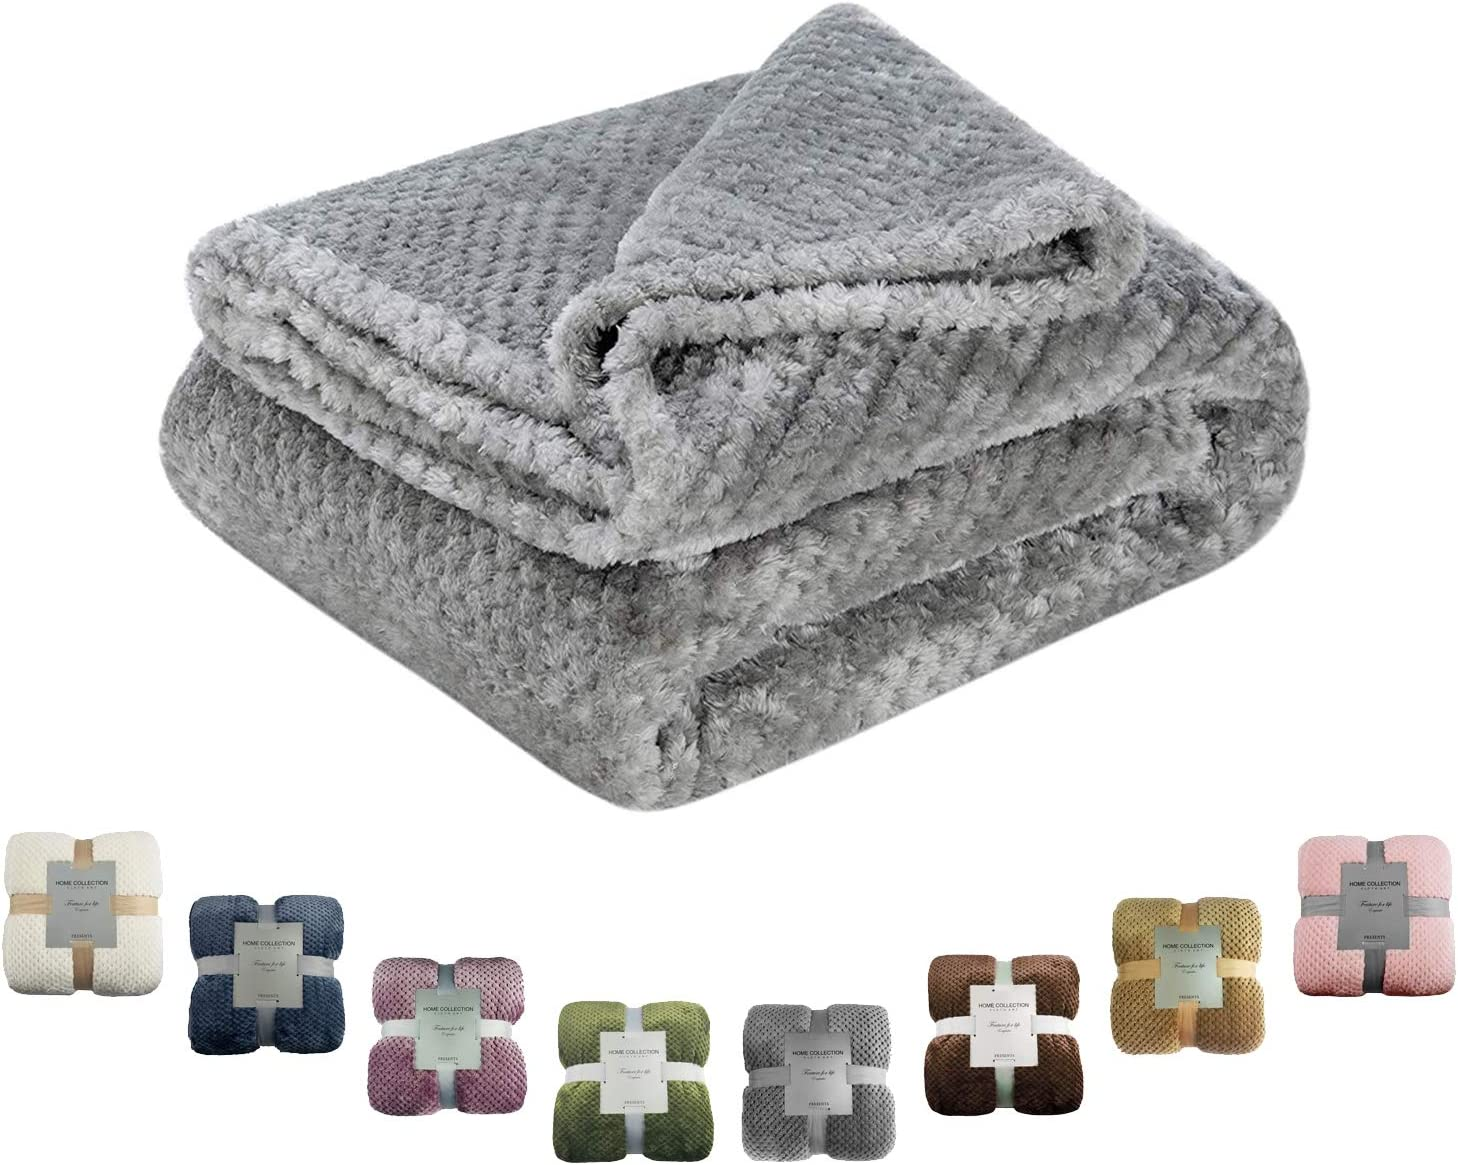 Msicyness Dog Blanket X Large Pink Premium Fleece Fluffy Throw Blankets Soft and Warm Covers for Pets Dogs Cats